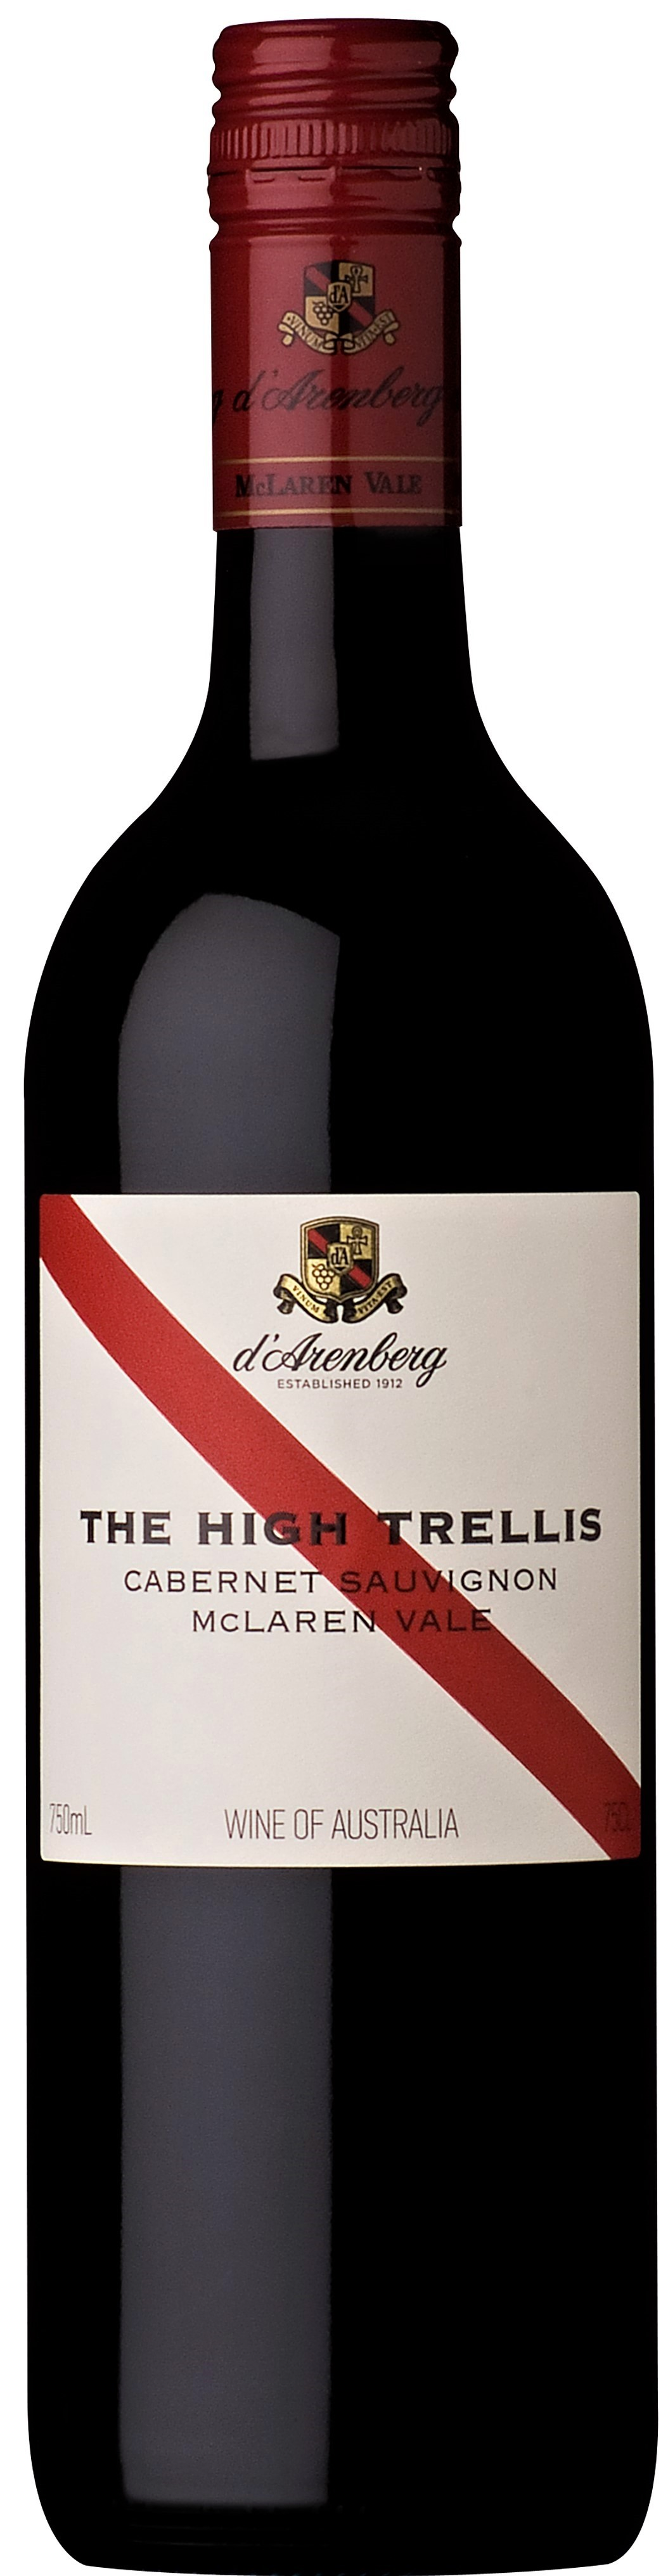 Bodega D'Arenberg - The High Trellis - 2015 McLaren Vale